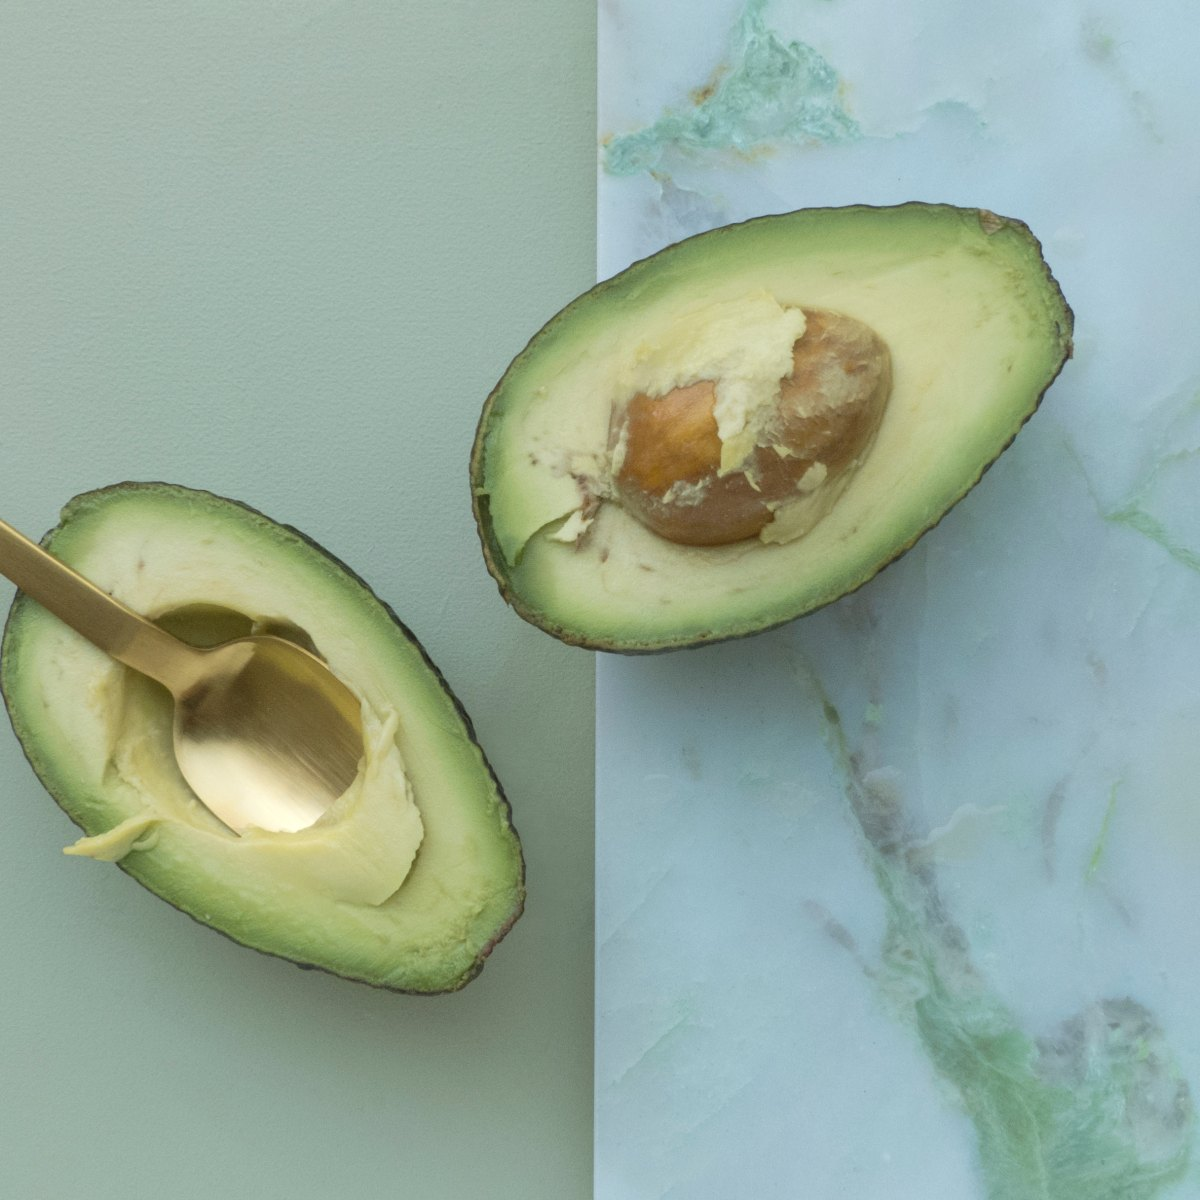 Avocado Halves, Arthritis Foodie, Why I Started to blog about my arthritis, young people with arthritis